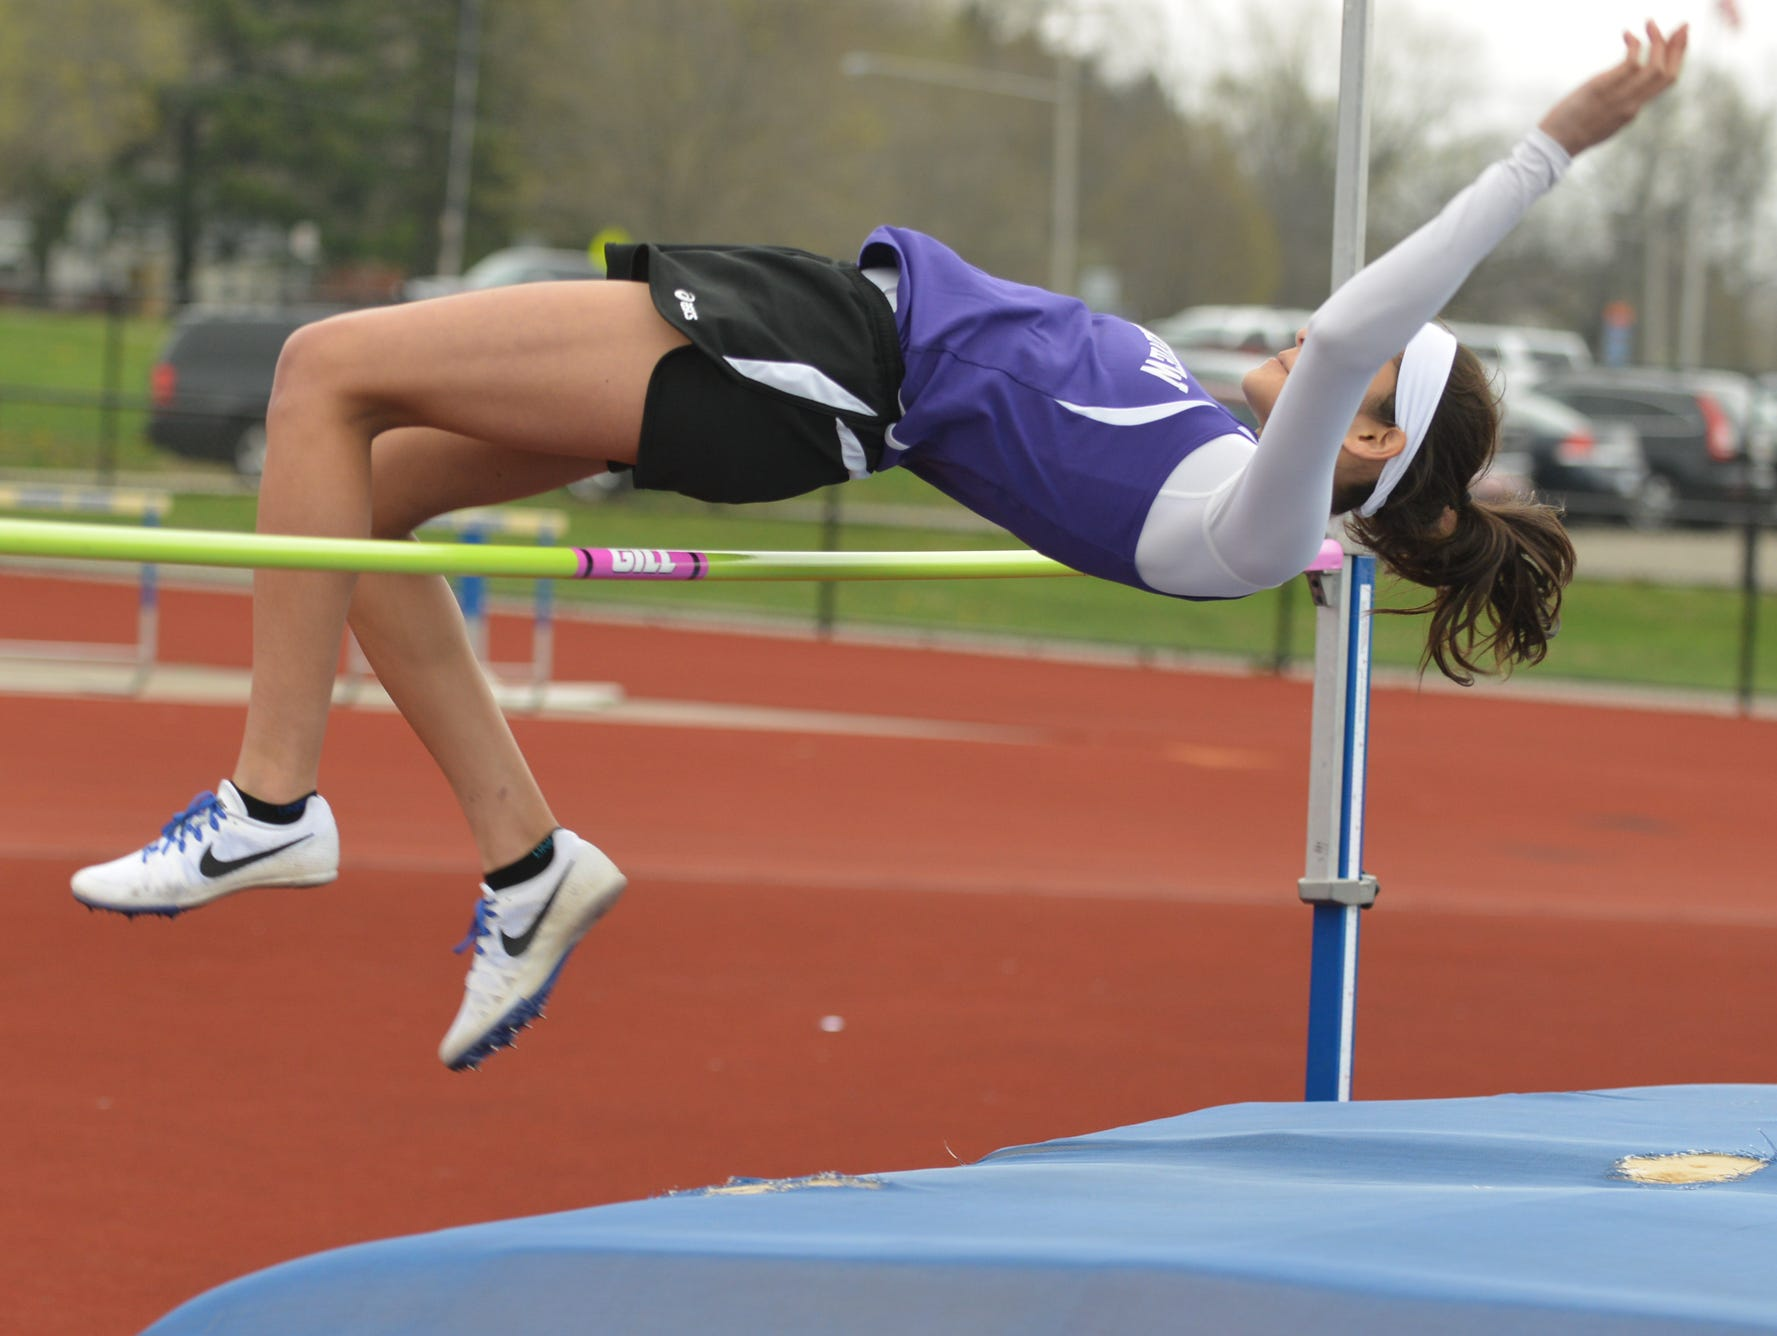 Lakeview's Rose Tecumseh participates in the high jump event during the 2016 All City Track Meet held at Harper Creek High School Friday afternoon.